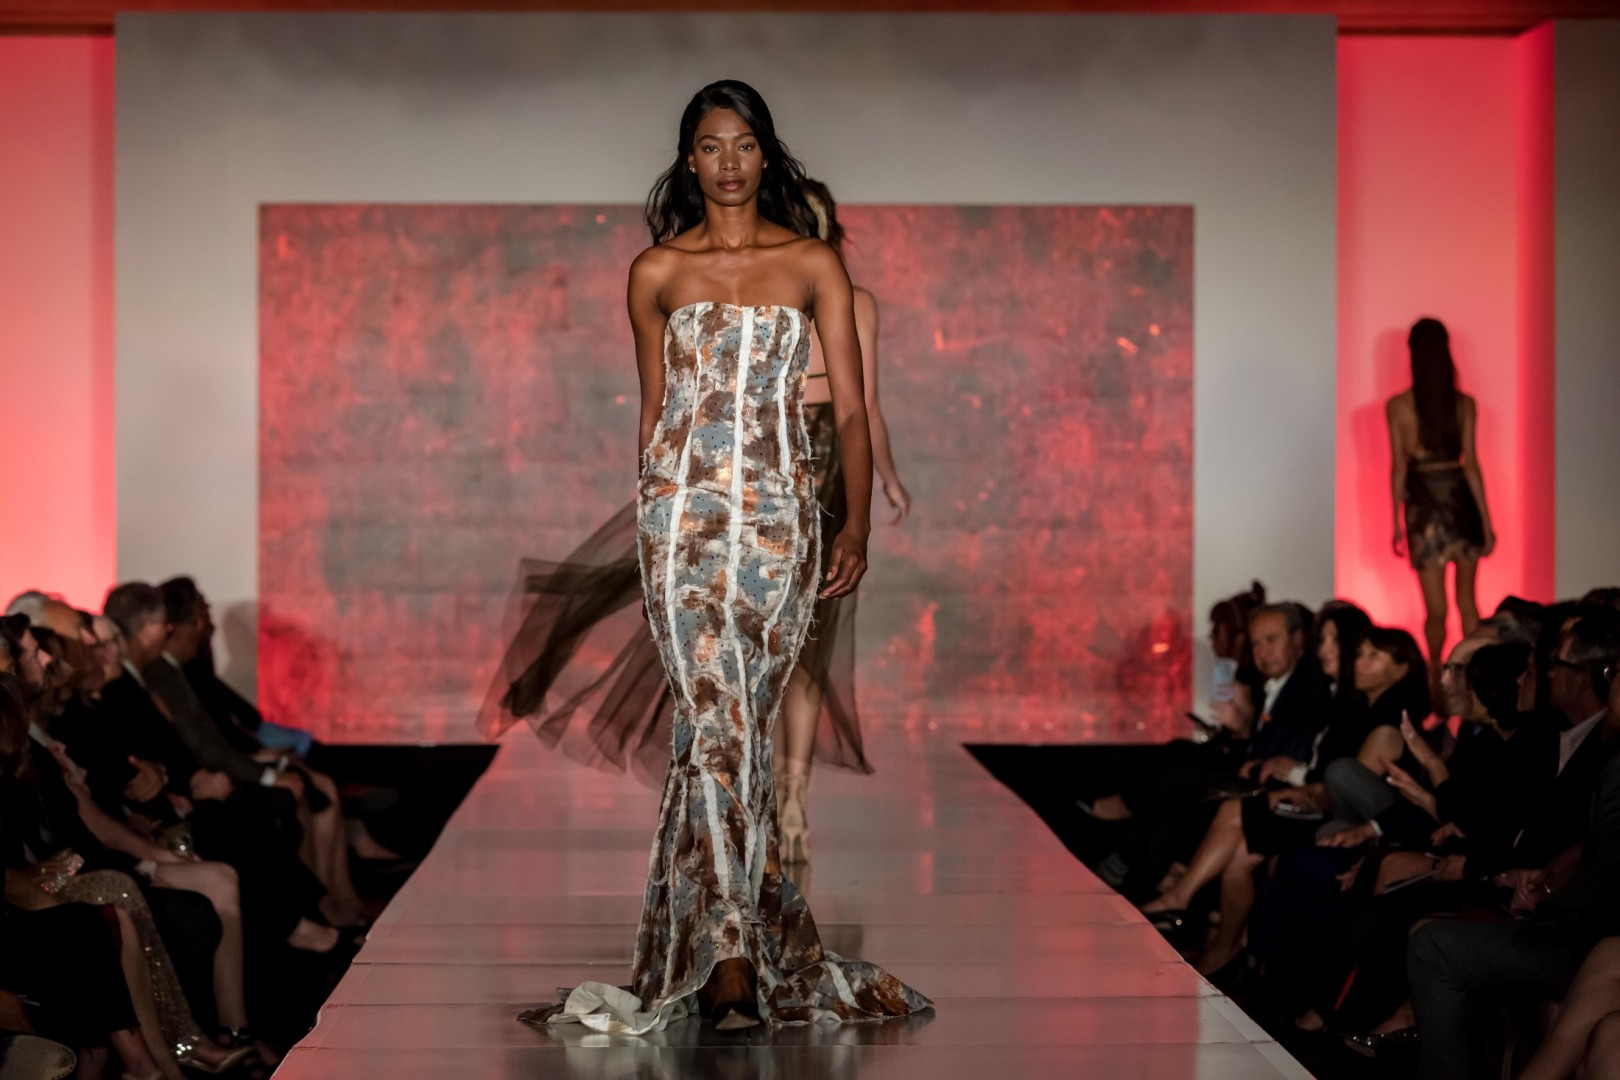 Woodbury University Fashion Show, designer Lauren Dergentis, photo Wayne D. Fleshman, EDGExpo.com, 2019